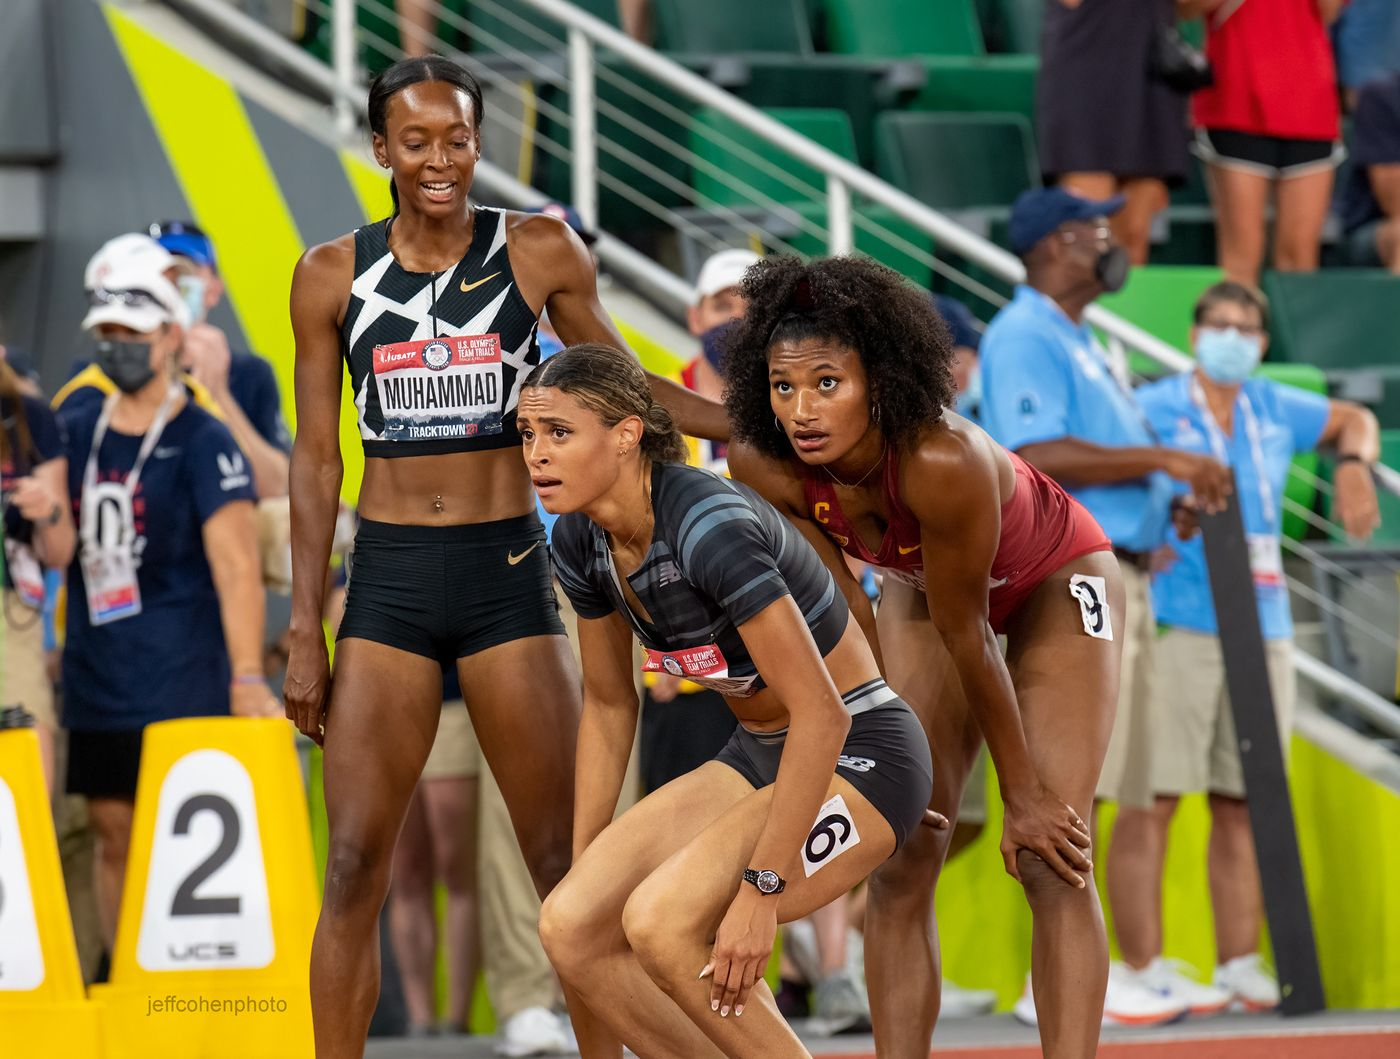 mclaughlin-400wh-2021-US-Oly-Trials--day-8-1588-jeff-cohen-photo--web.jpg